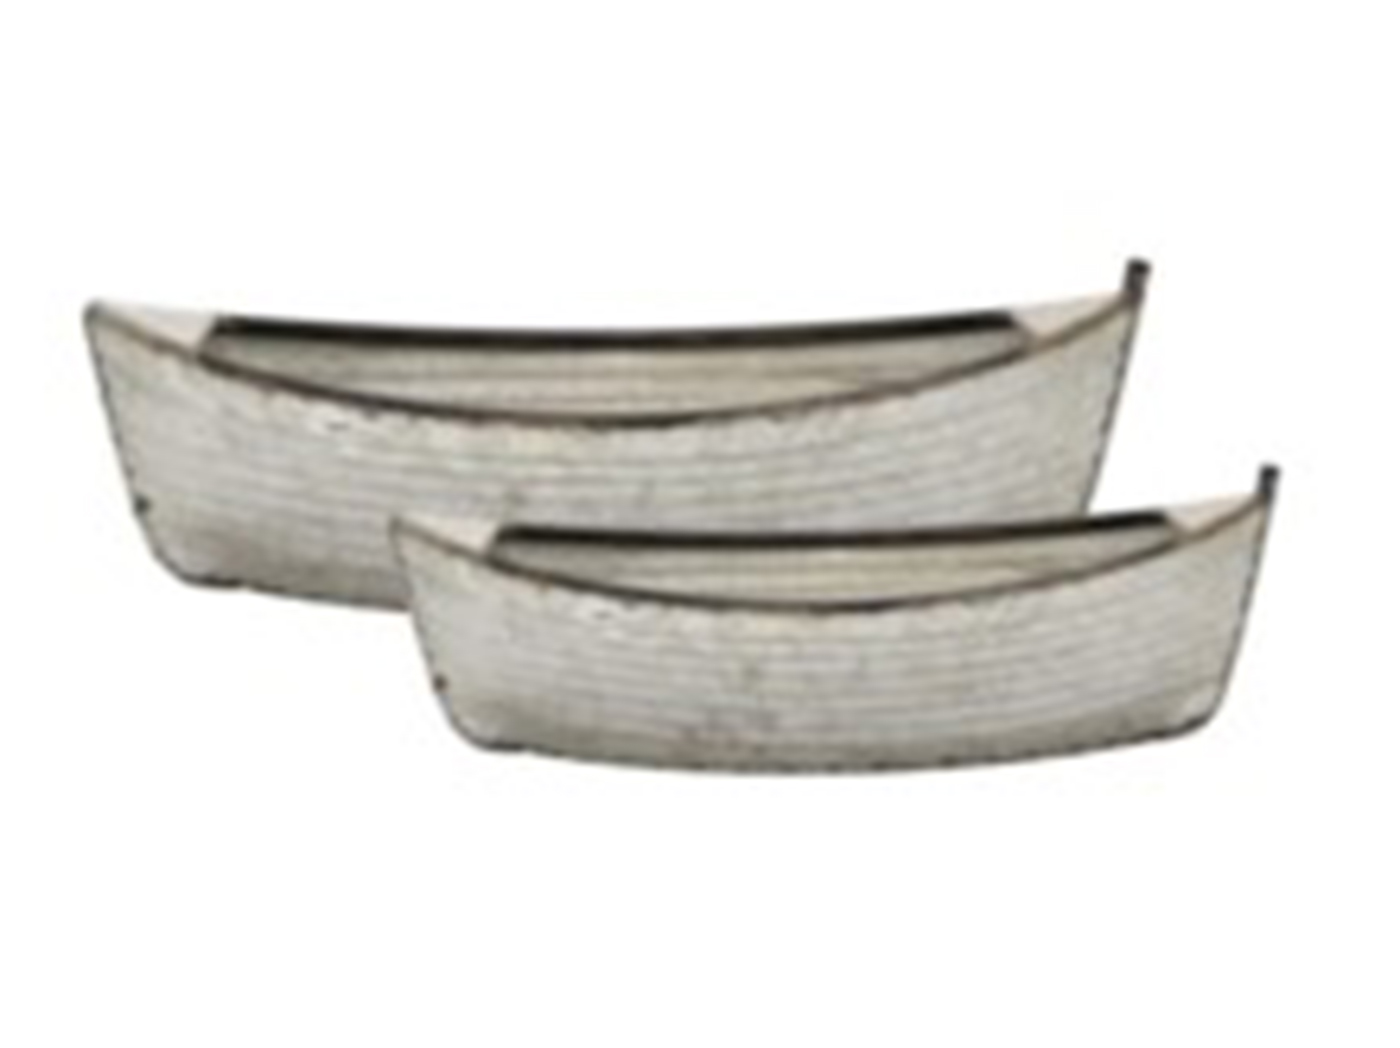 "Set of 2 Galvanized Boat Planters 24""L x 12""H"